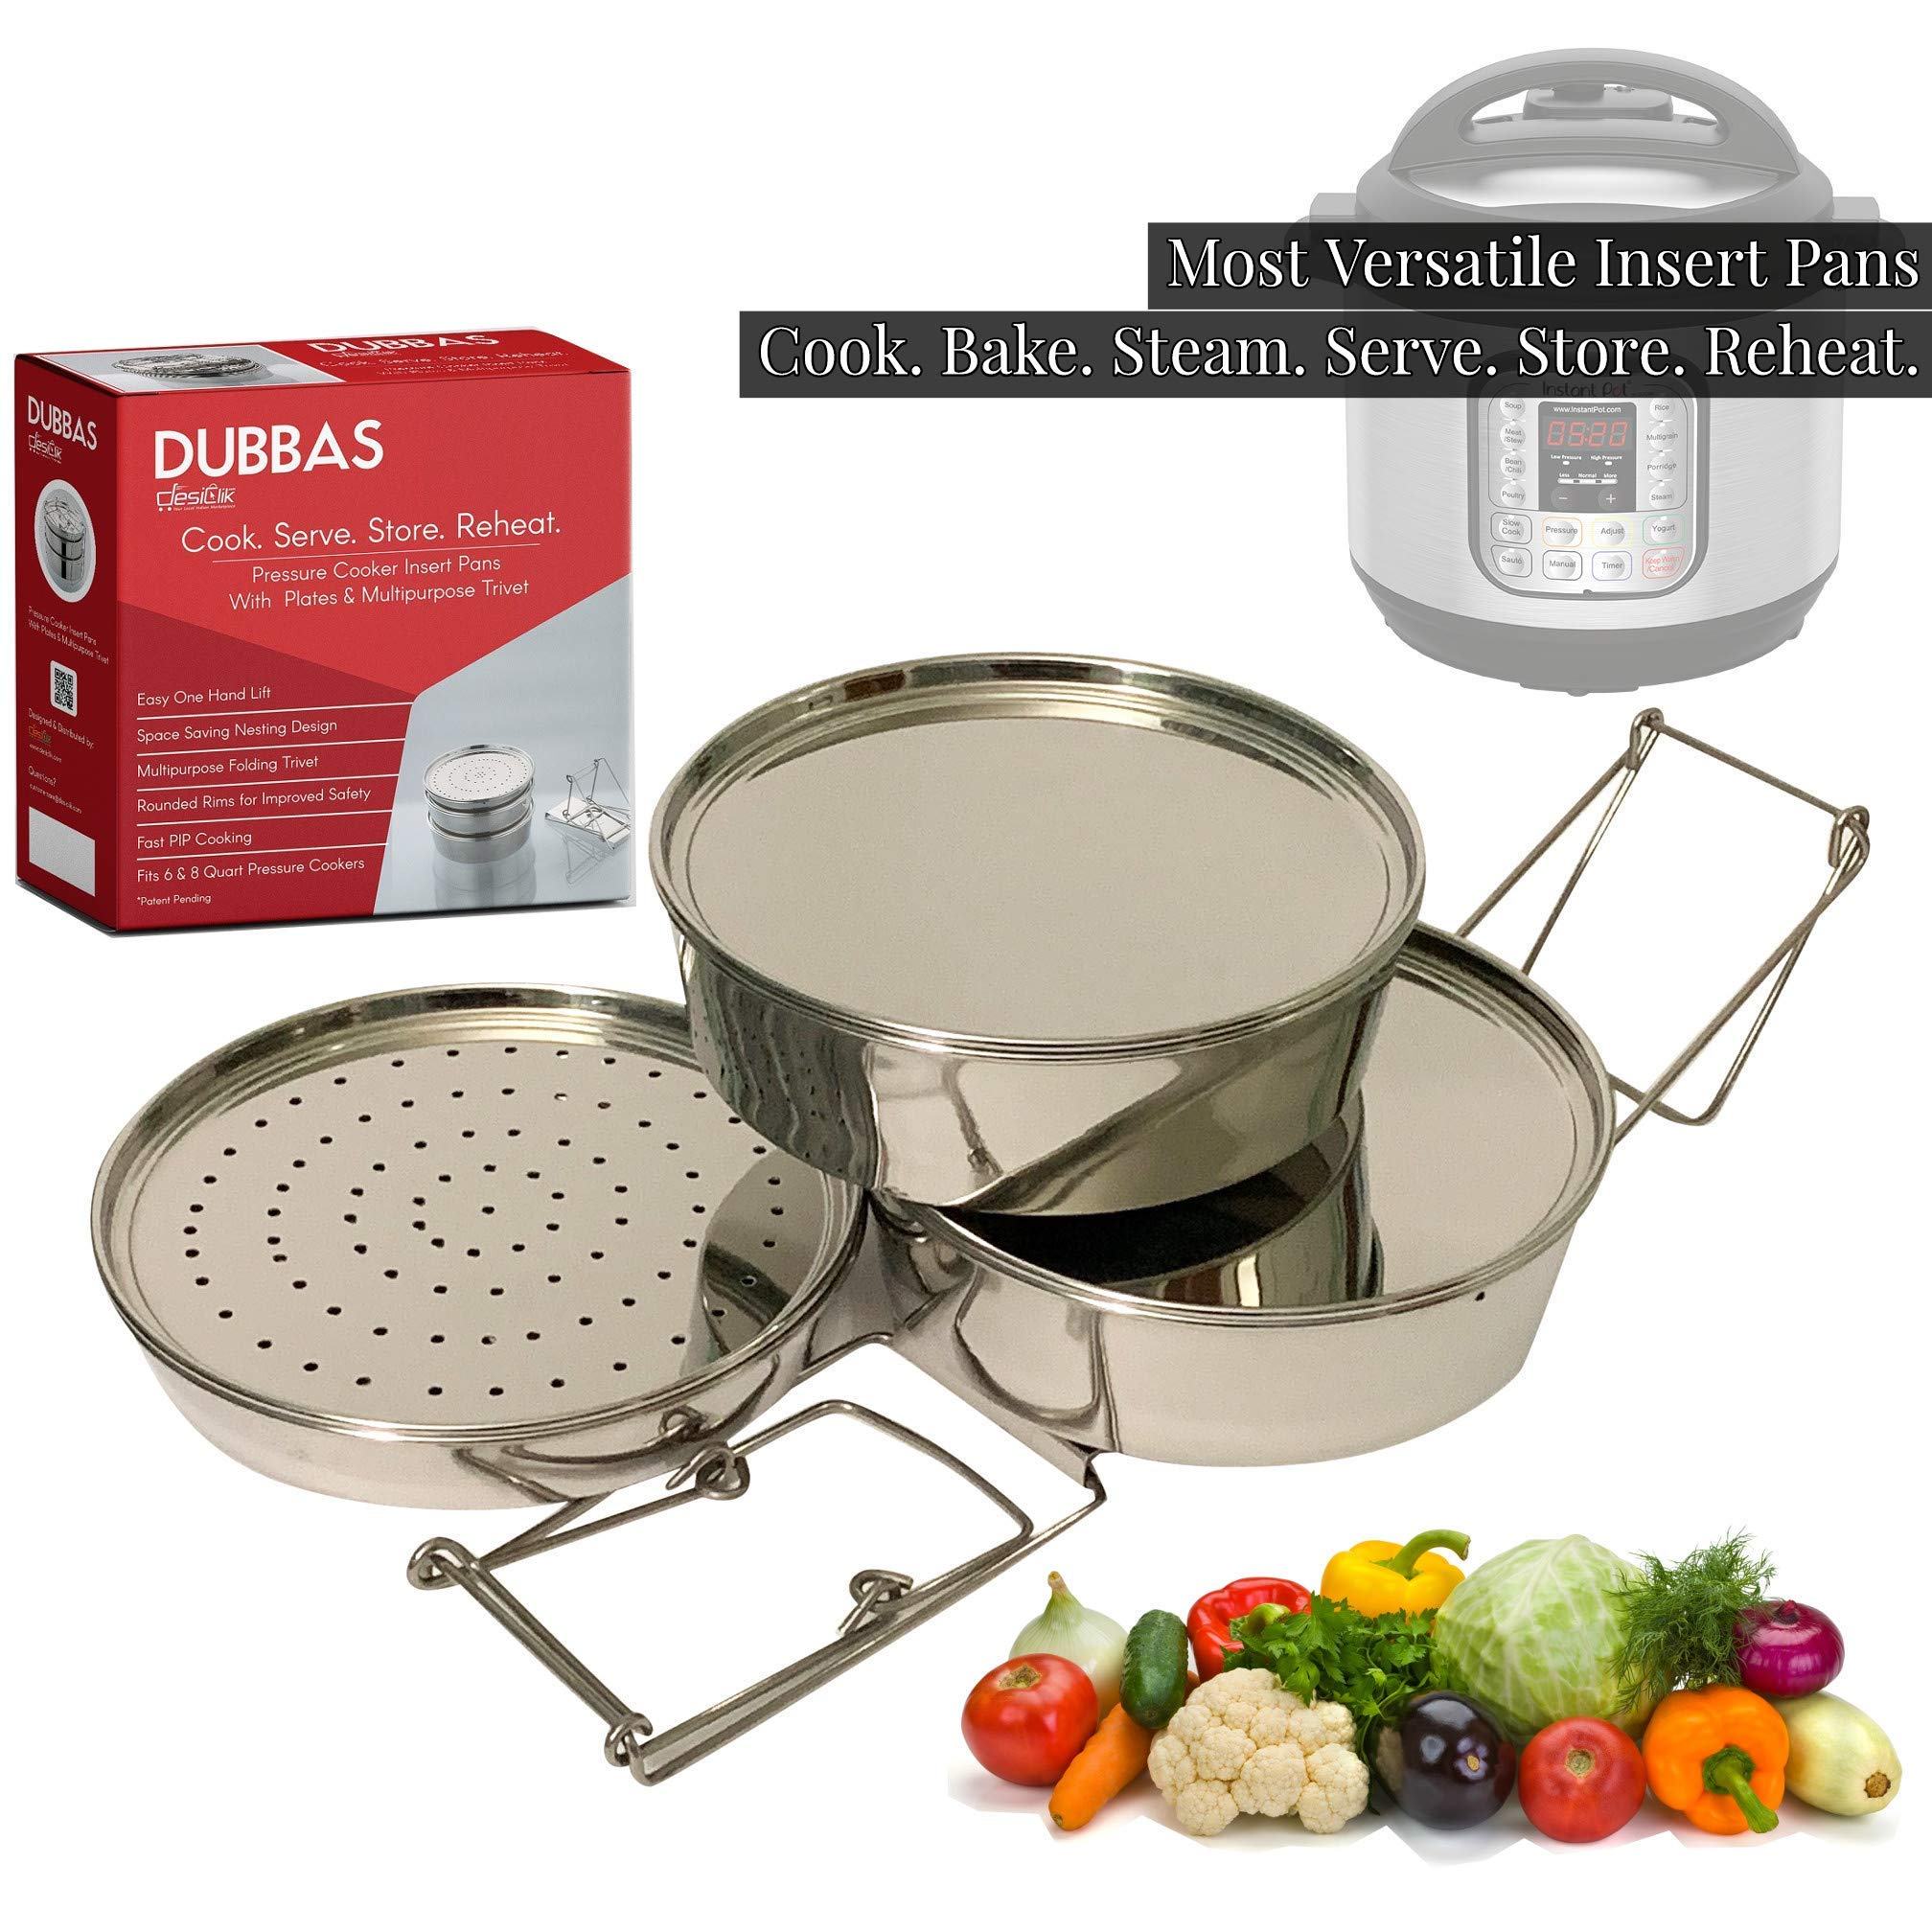 Dubbas - Most Versatile 3 Tier Stackable Insert Pans/Steamer for Instant Pot Cooker PIP w/Lids/Plates & Multipurpose Trivet/Sling to Cook, Serve, Store & Reheat by desiclik.com